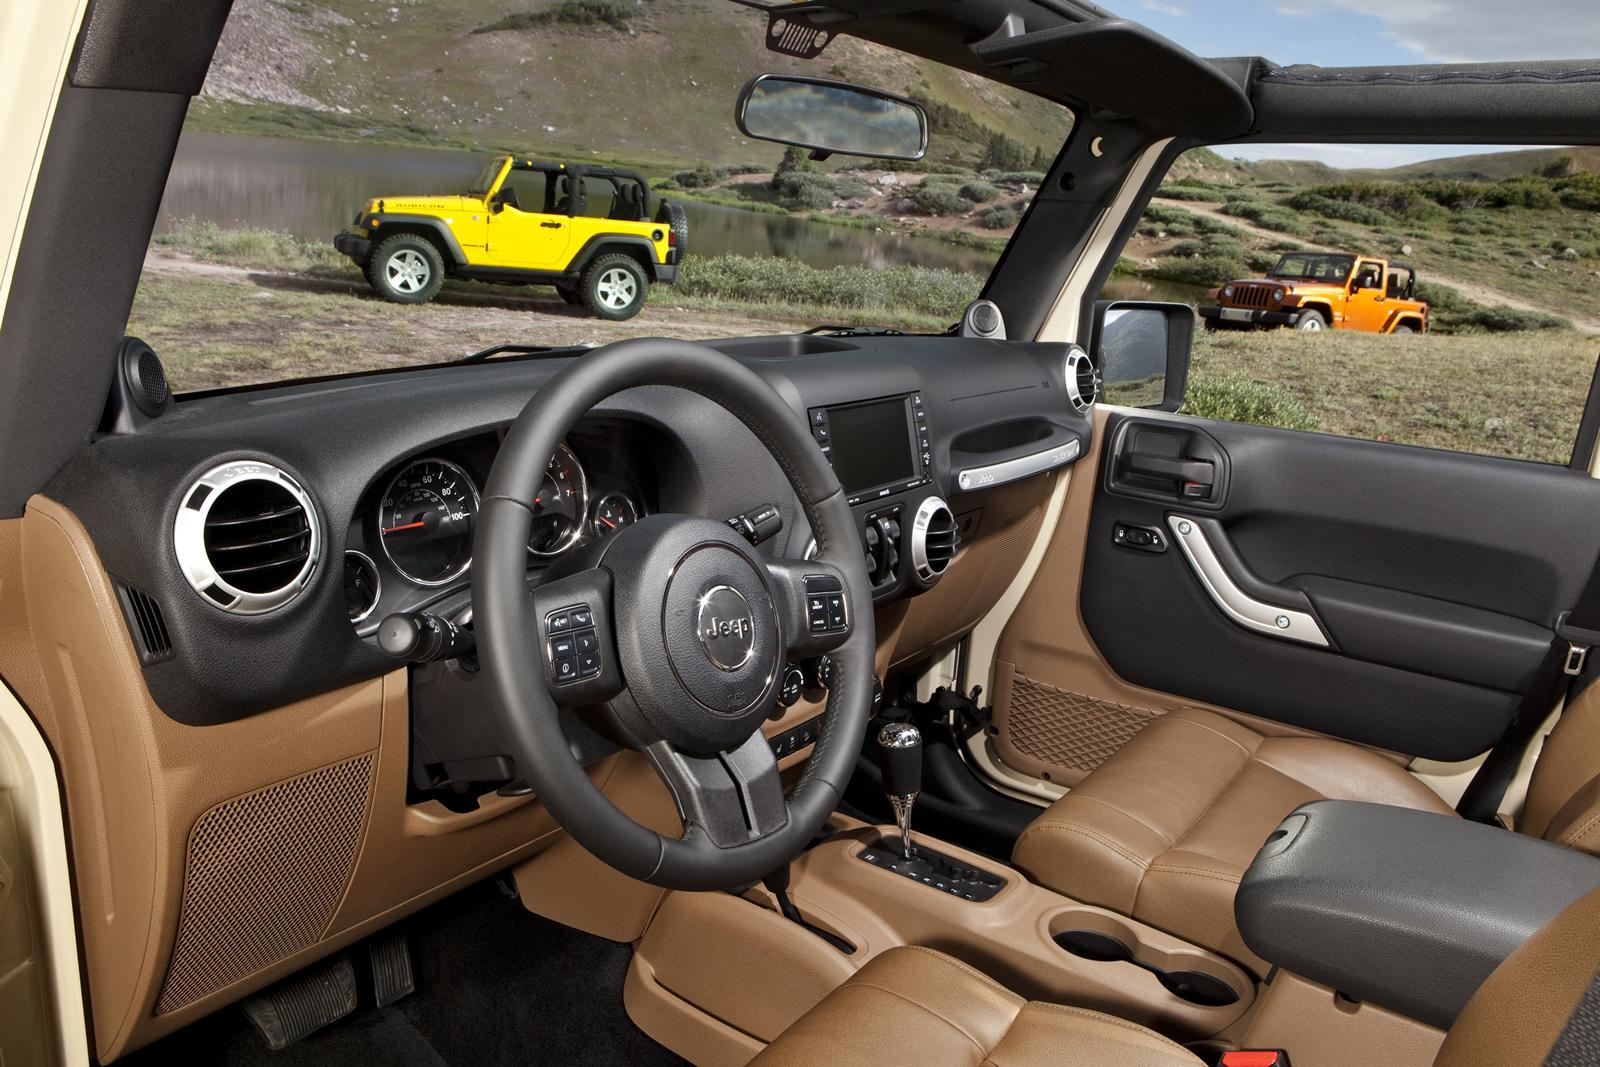 2012 Jeep Wrangler 8 2012 Jeep Wrangler with New Car Tuning Accessories – A Report